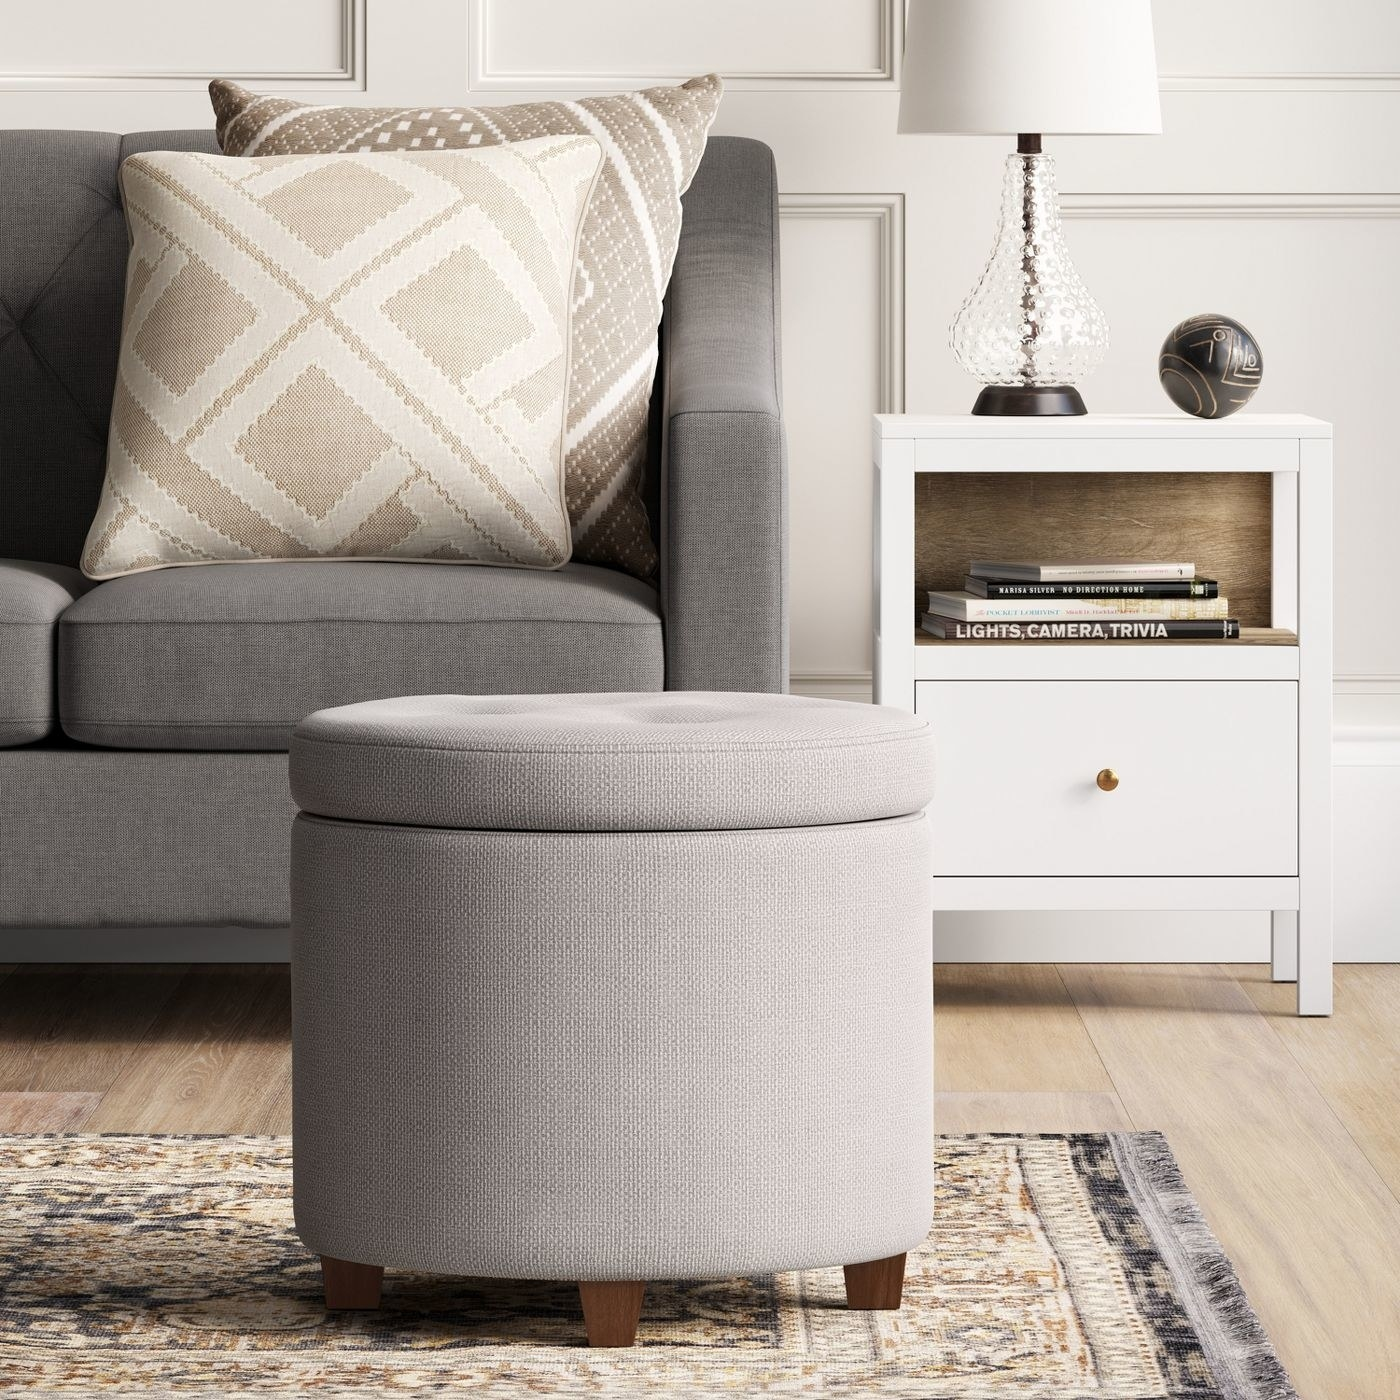 round light grey tufted storage ottoman with a lid and wood legs, in a living room